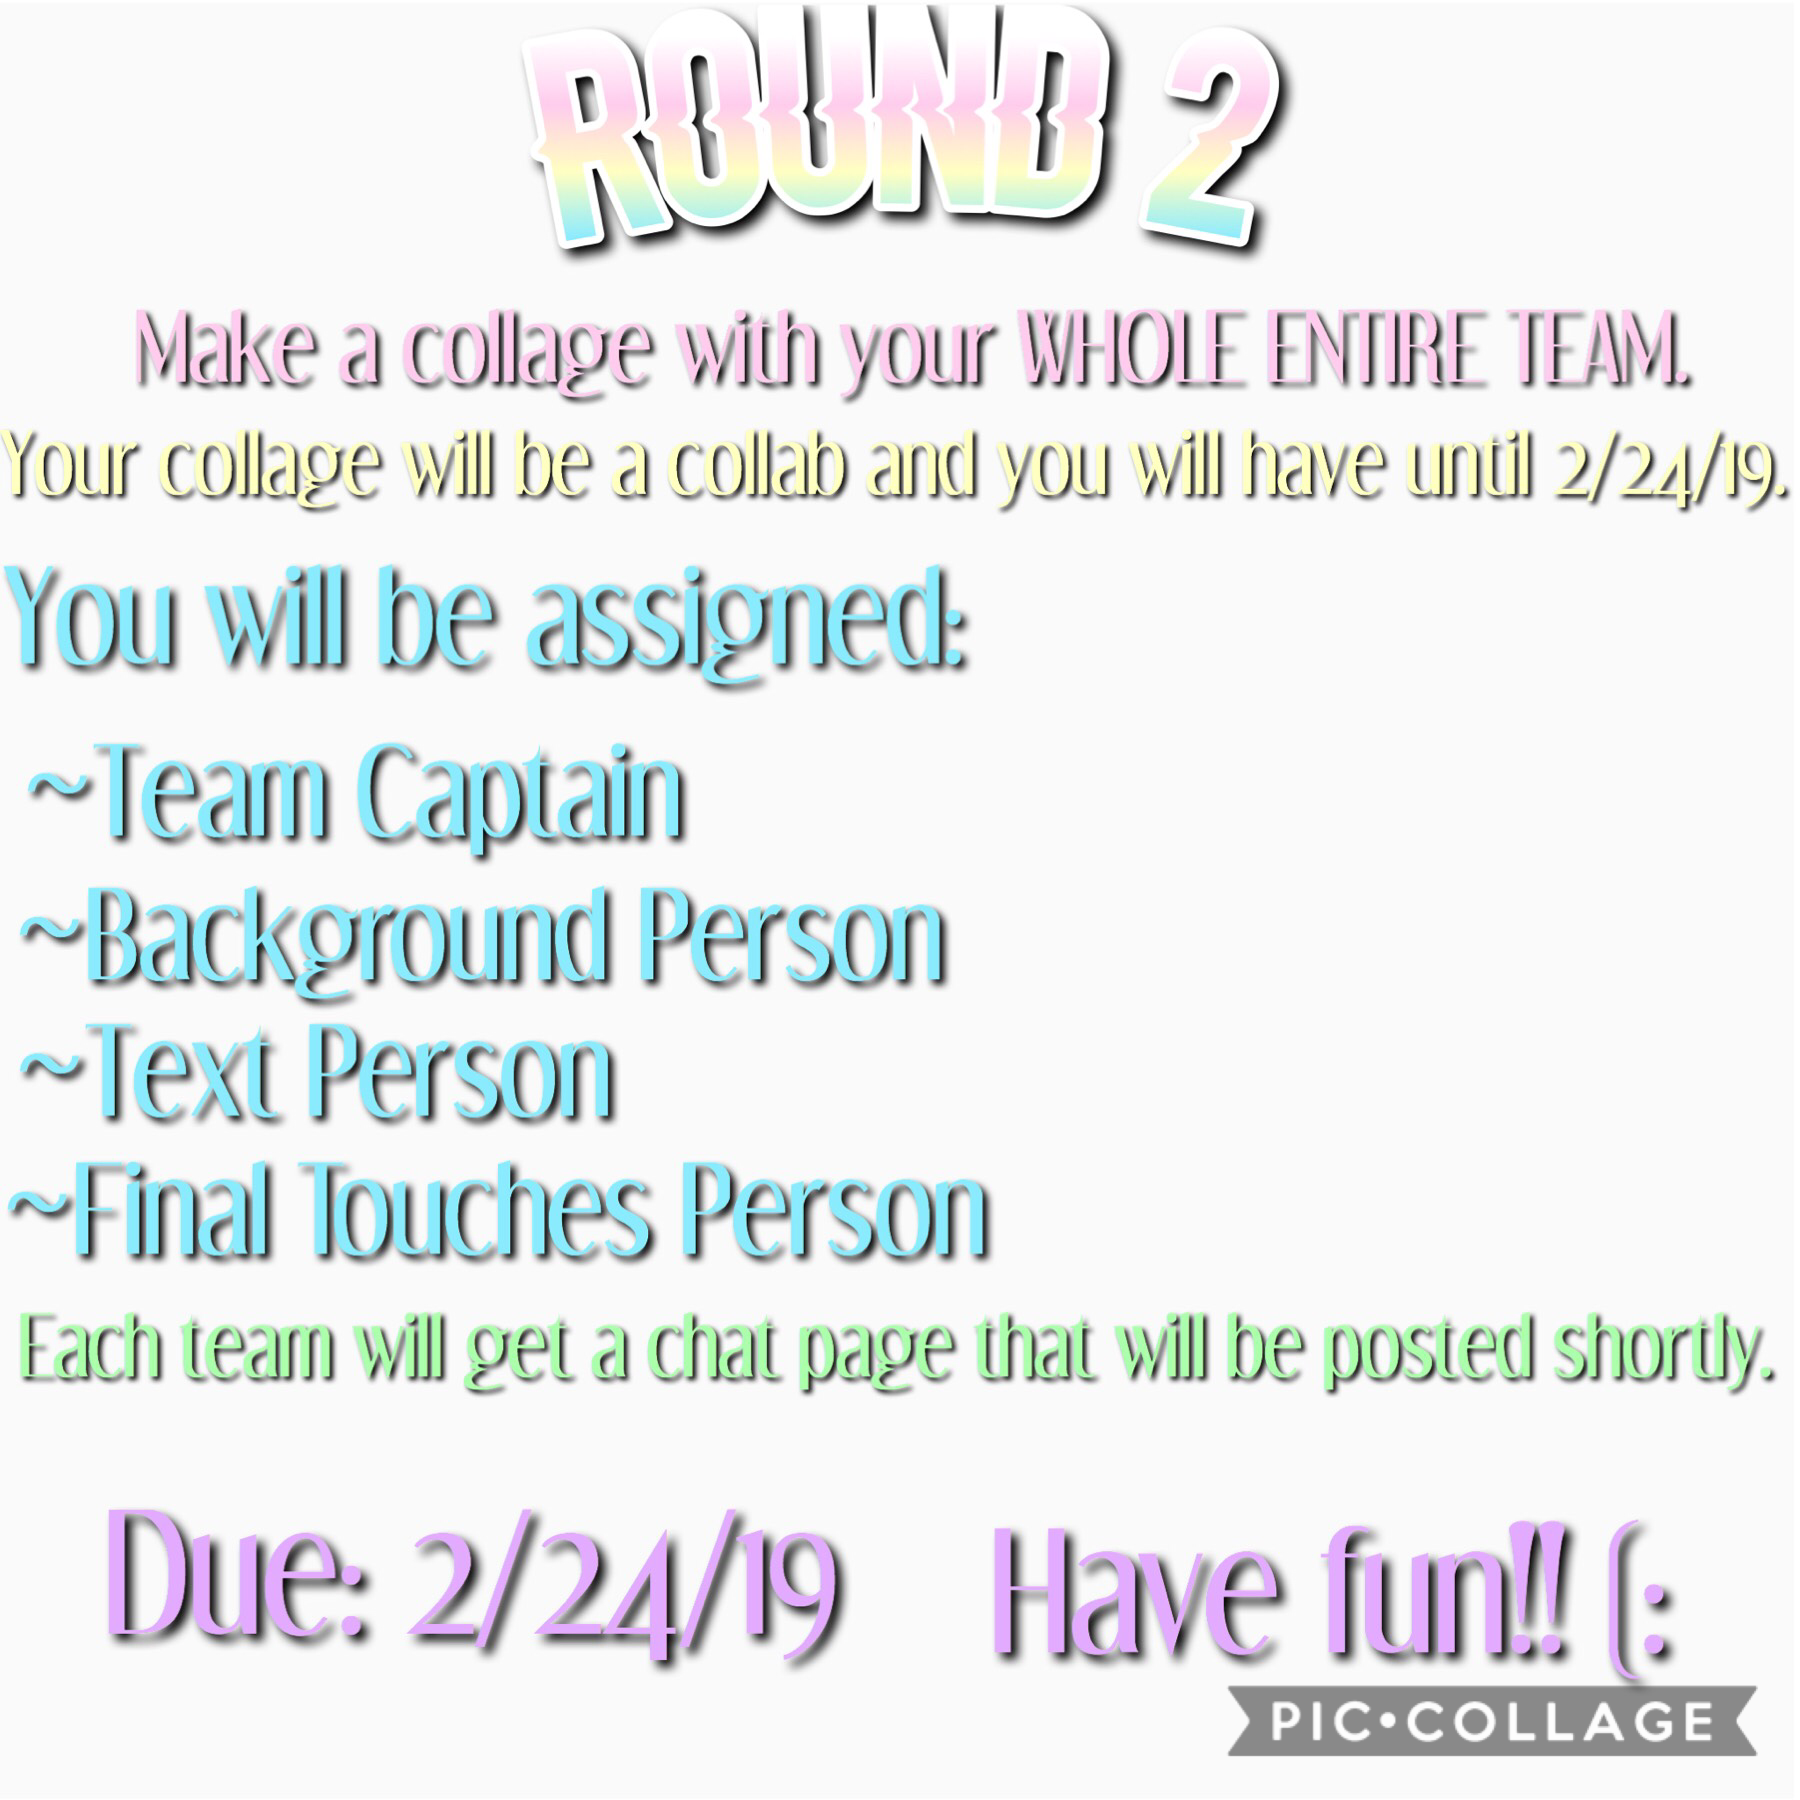 Tap the cherry >>>> 🍒 Hi everyone! Round 2 is posted! Please be mindful of your time, work together, and produce an awesome collage based on your team. 😀